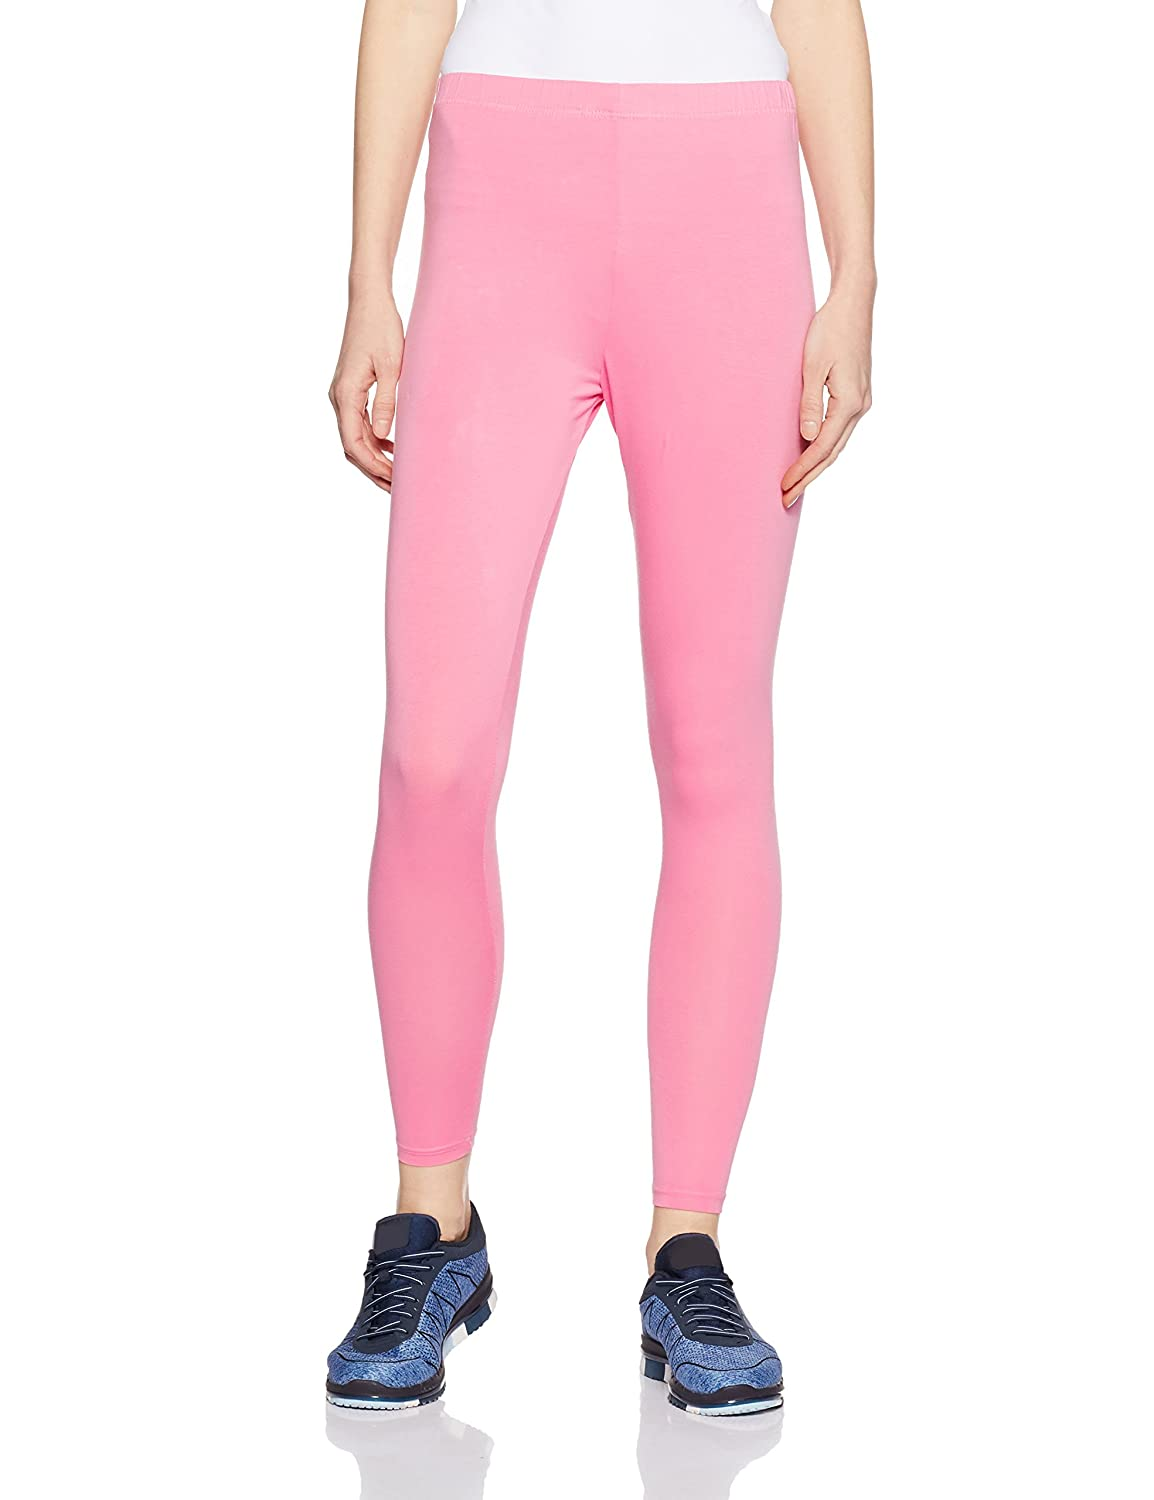 LUX LYRA Women's Leggings AL Legg Light Pink 19